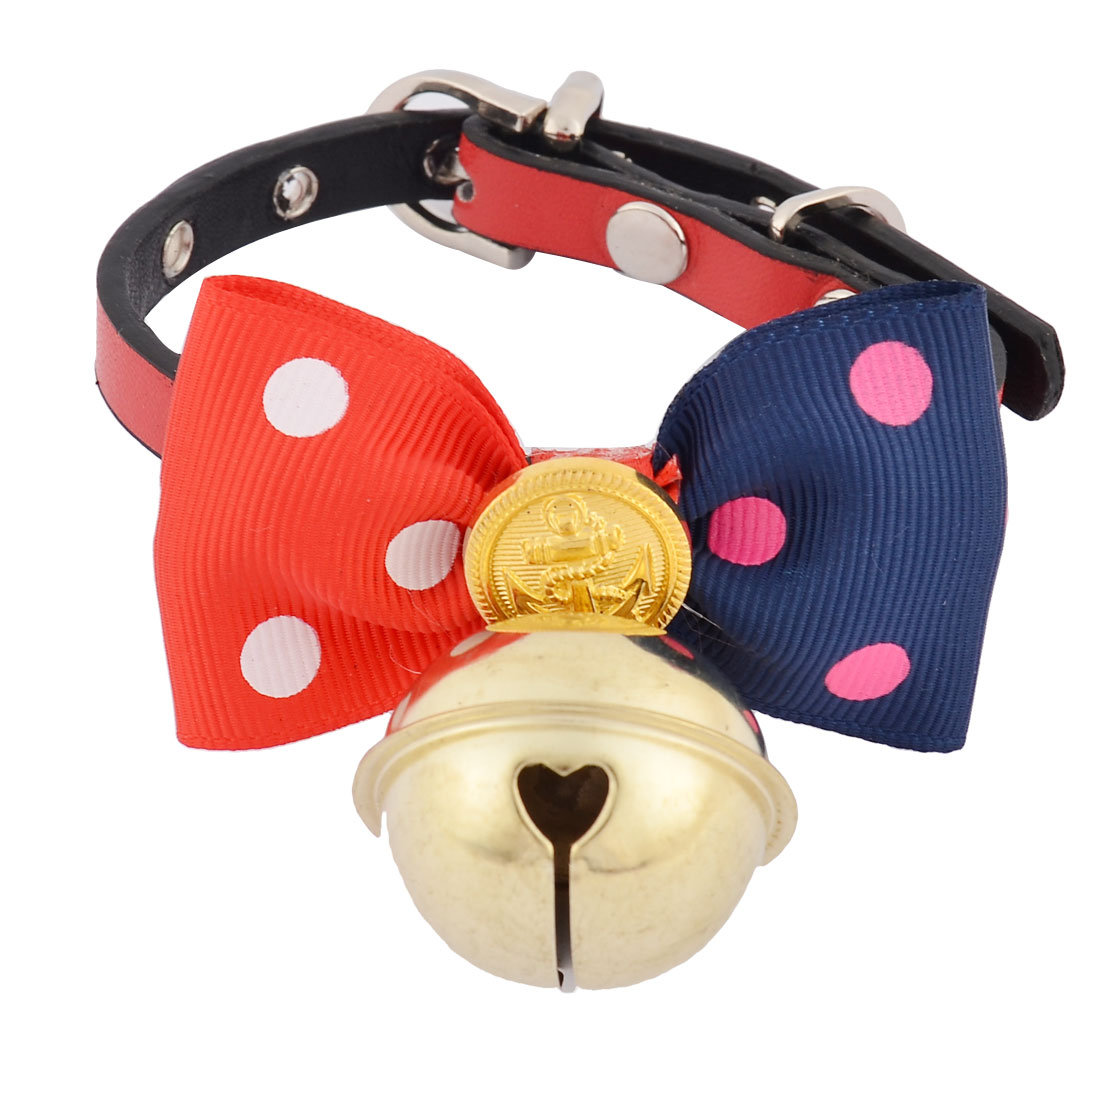 Faux Leather Bowknot Shaped Metal Bell Pendent Pet Doggy Dog Collar Red Gold Tone